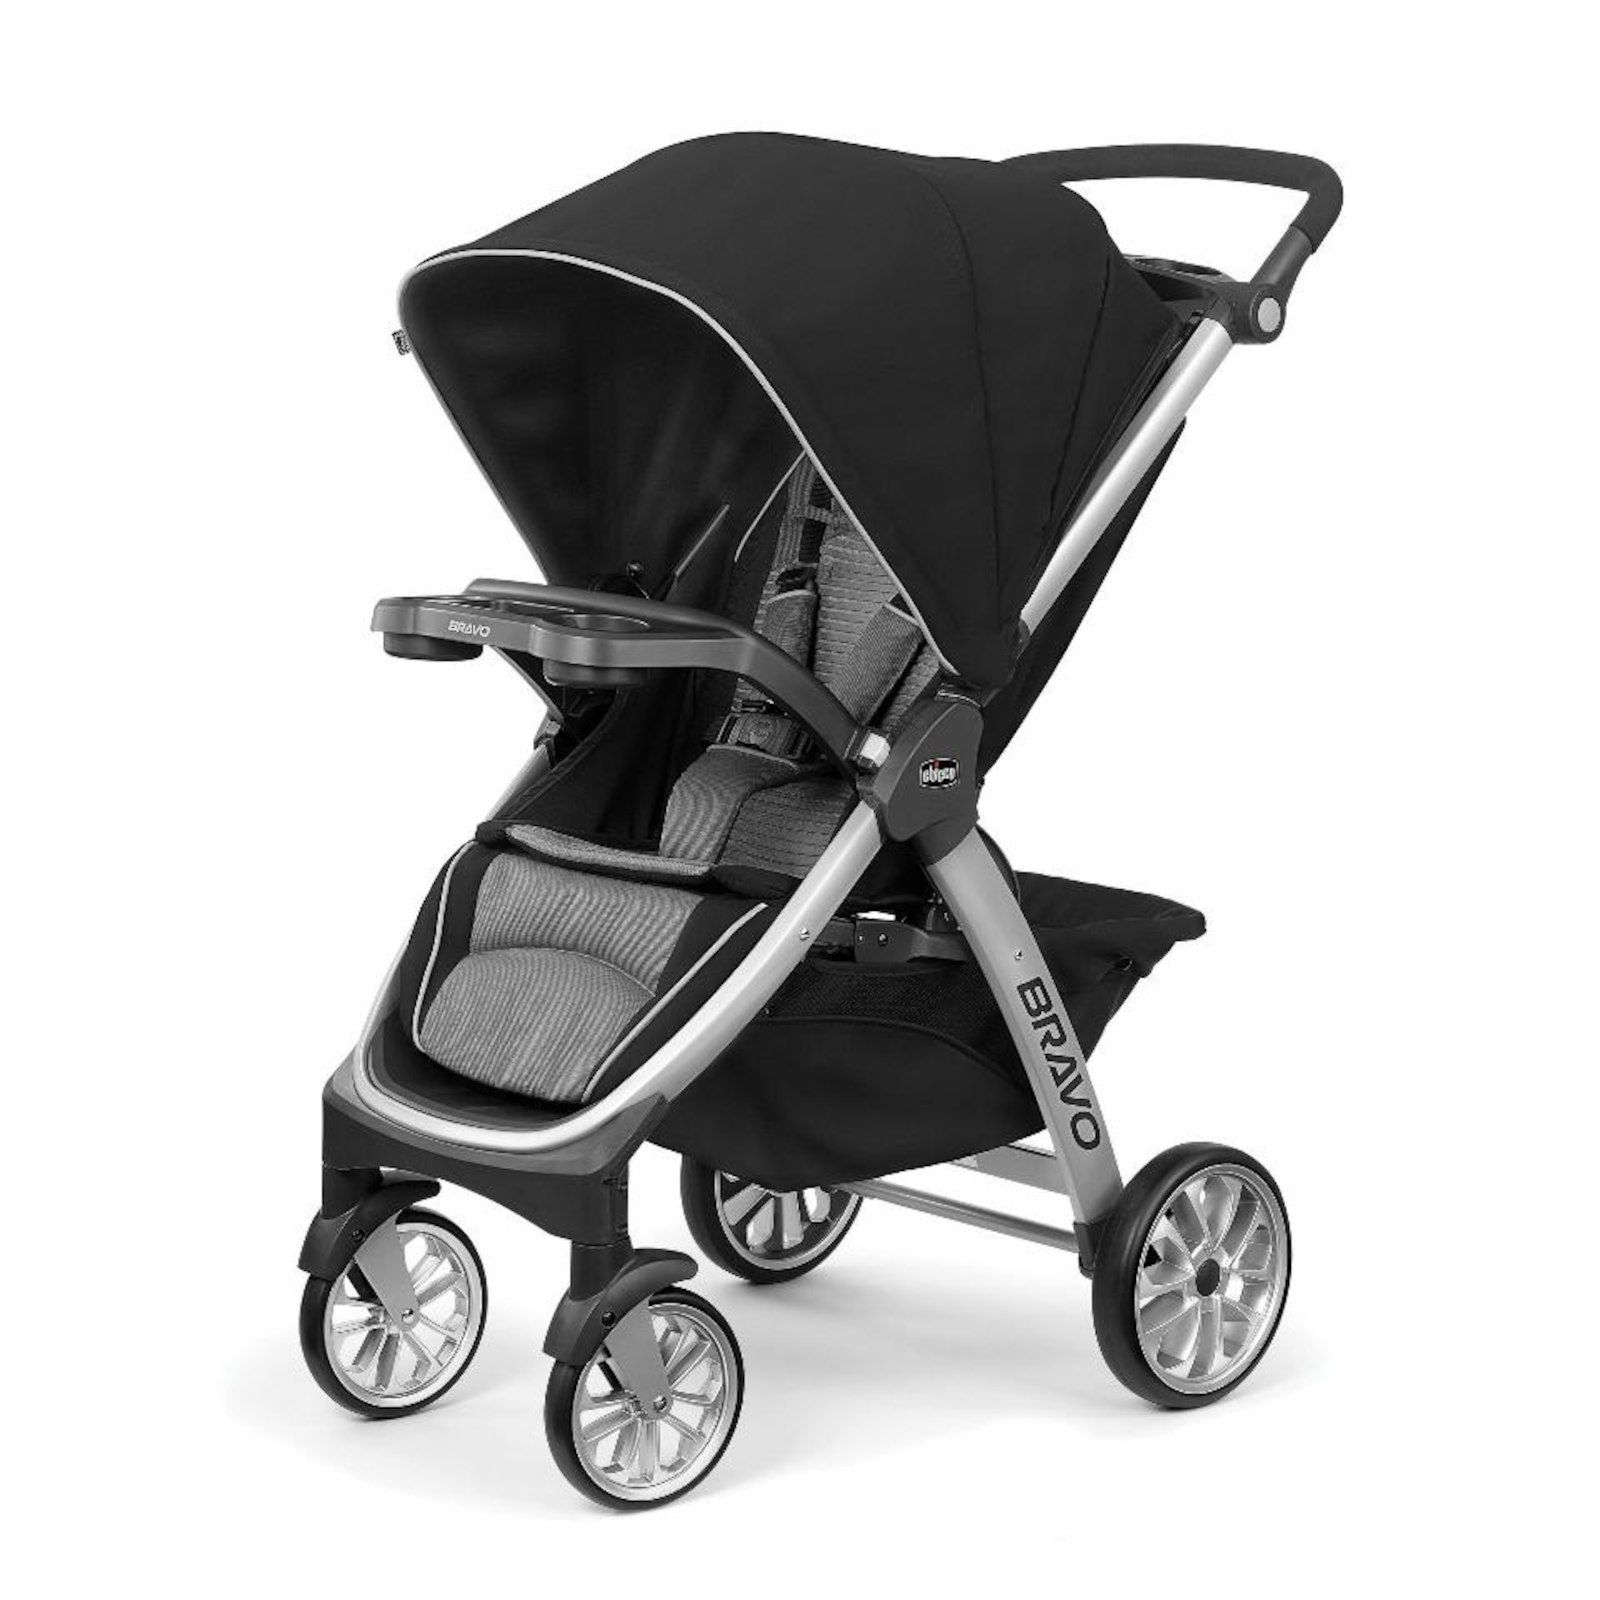 Bravo the smartest quickfold Stroller in its class and